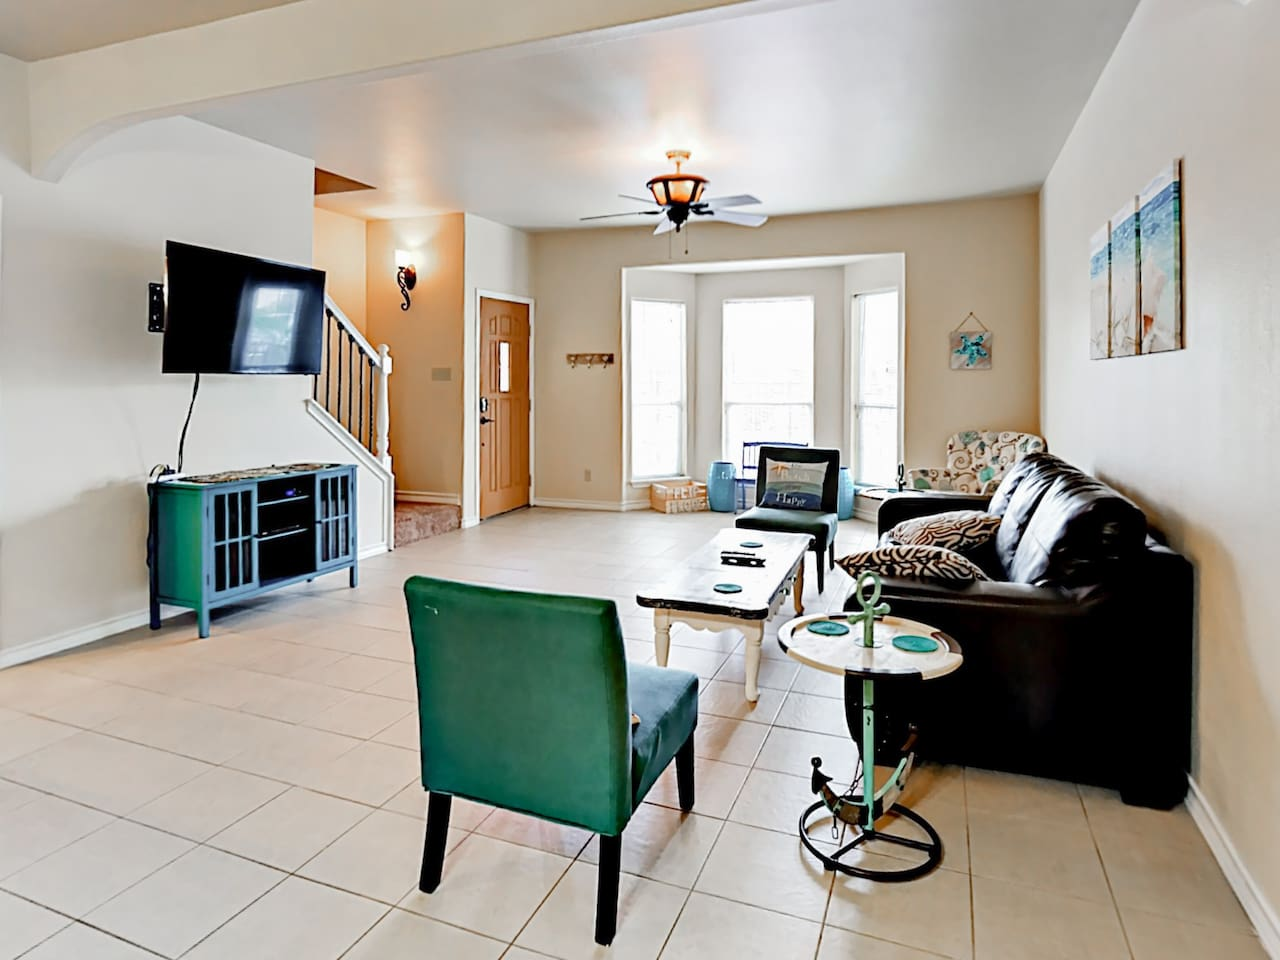 Welcome to Corpus Christi! This property is professionally managed by TurnKey Vacation Rentals